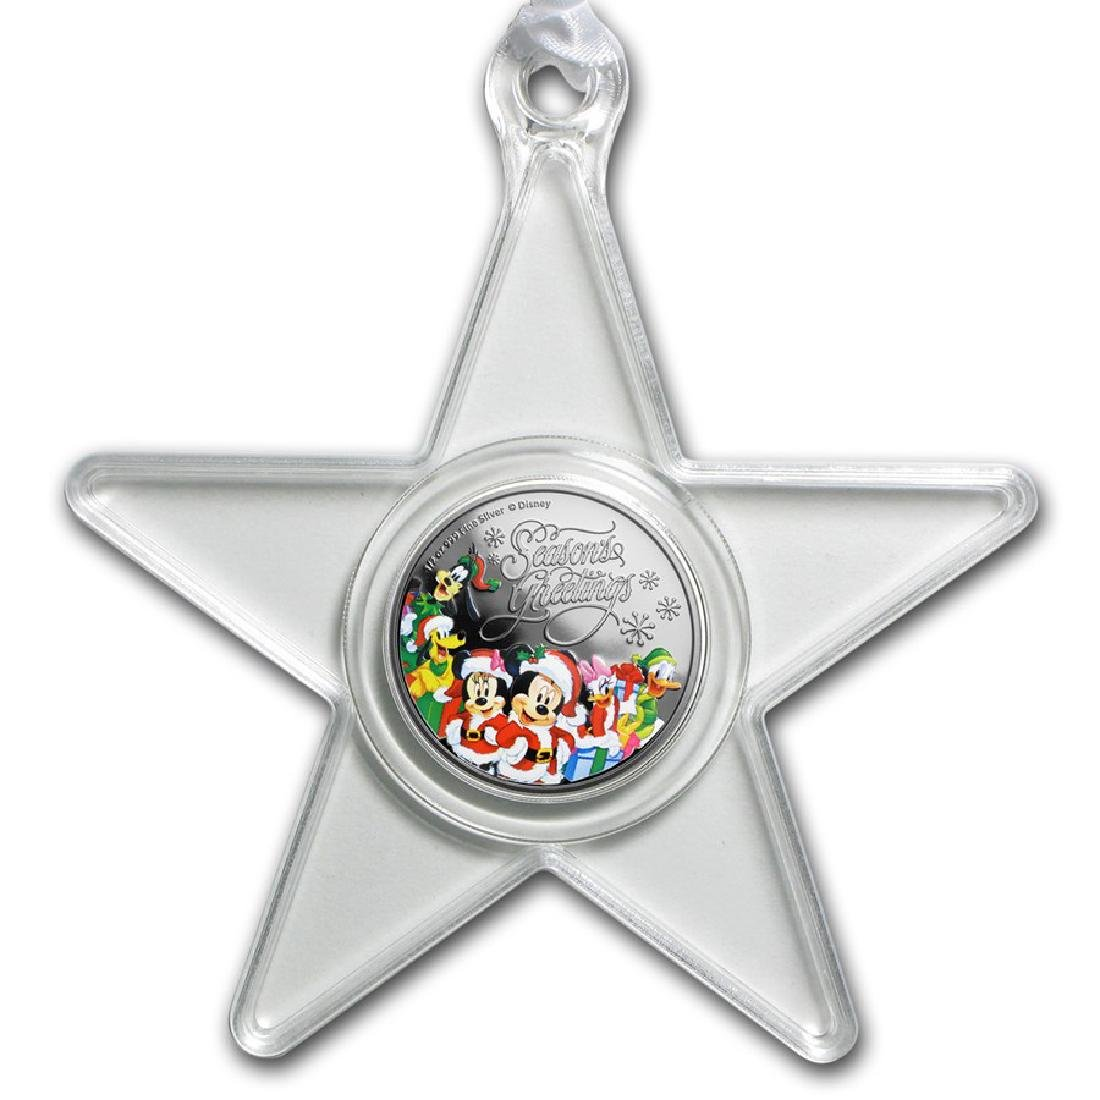 2016 $1 Seasons Greetings 1/2 Silver Coin Ornament